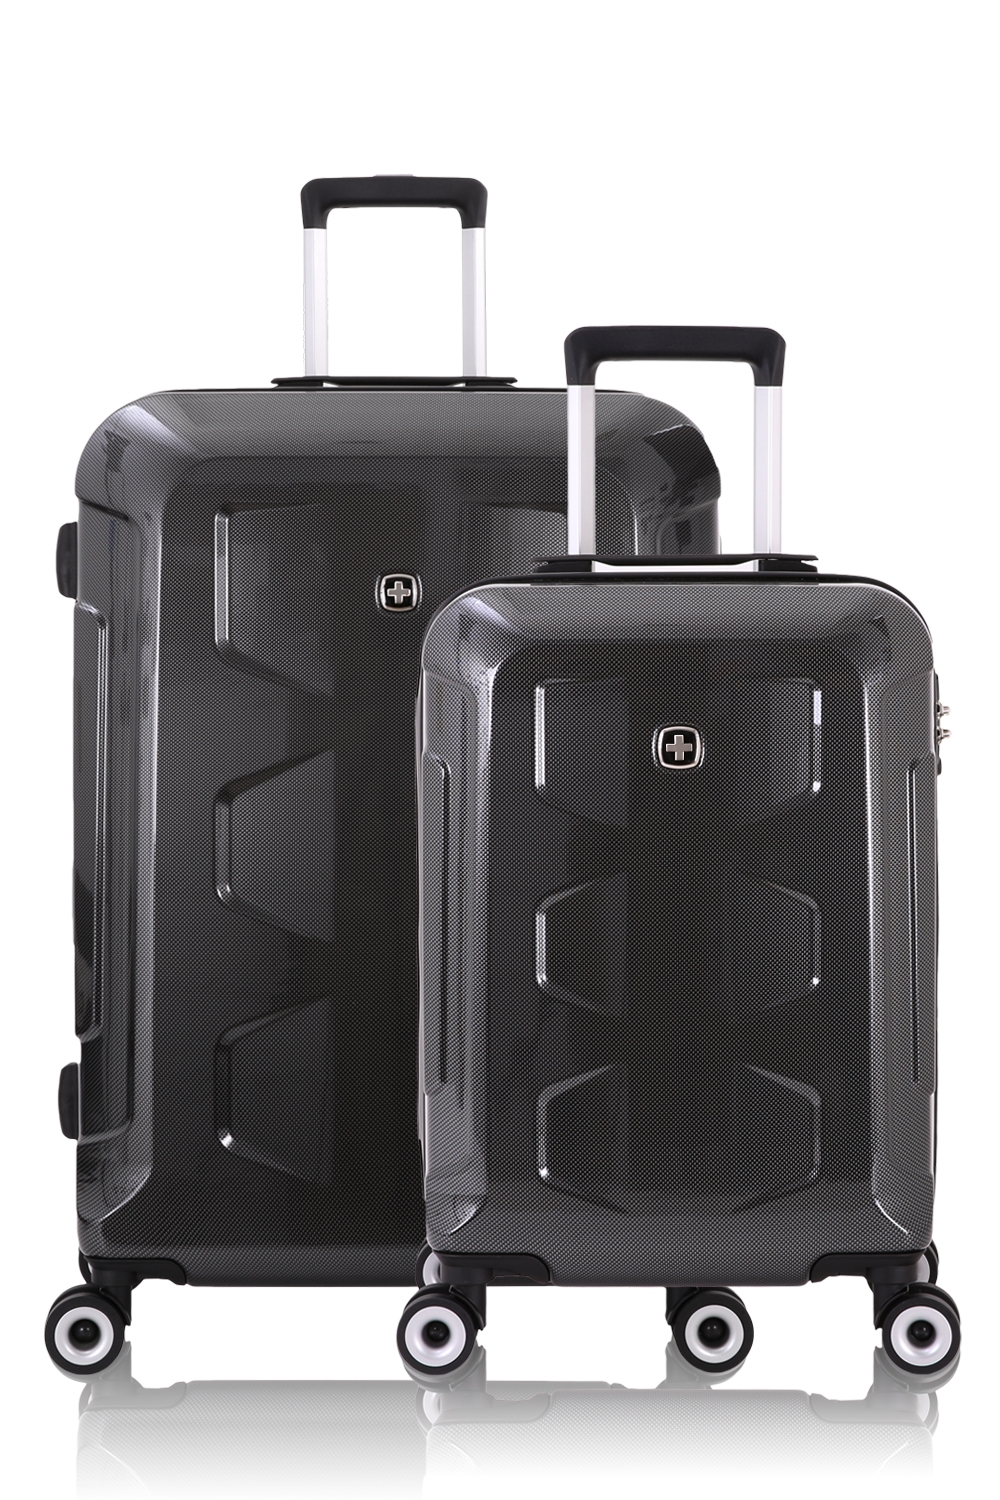 Swissgear 6572 Limited Edition Hardside Spinner Luggage 2pc Set - Black